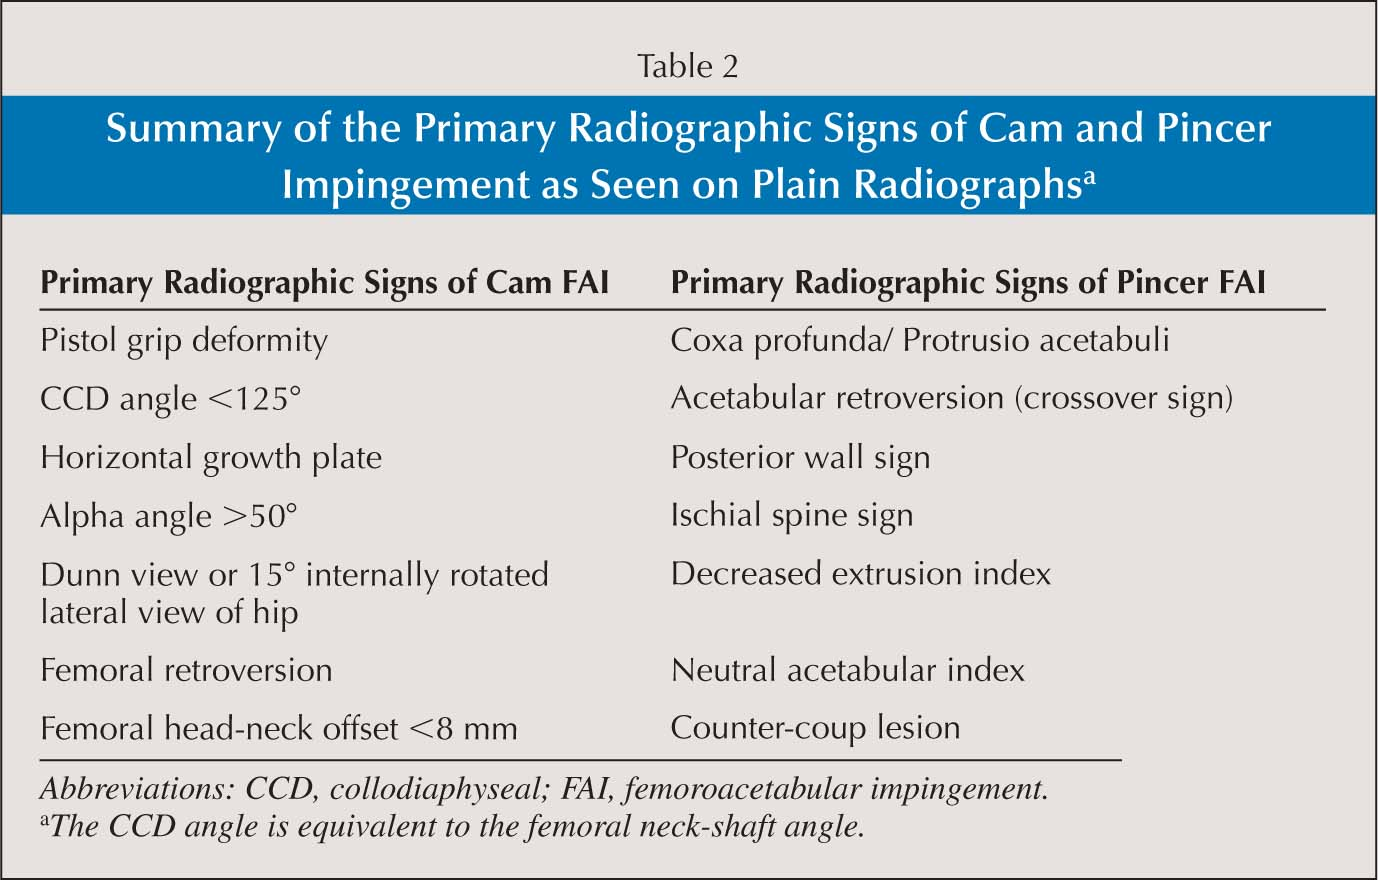 Summary of the Primary Radiographic Signs of Cam and Pincer Impingement as Seen on Plain Radiographsa